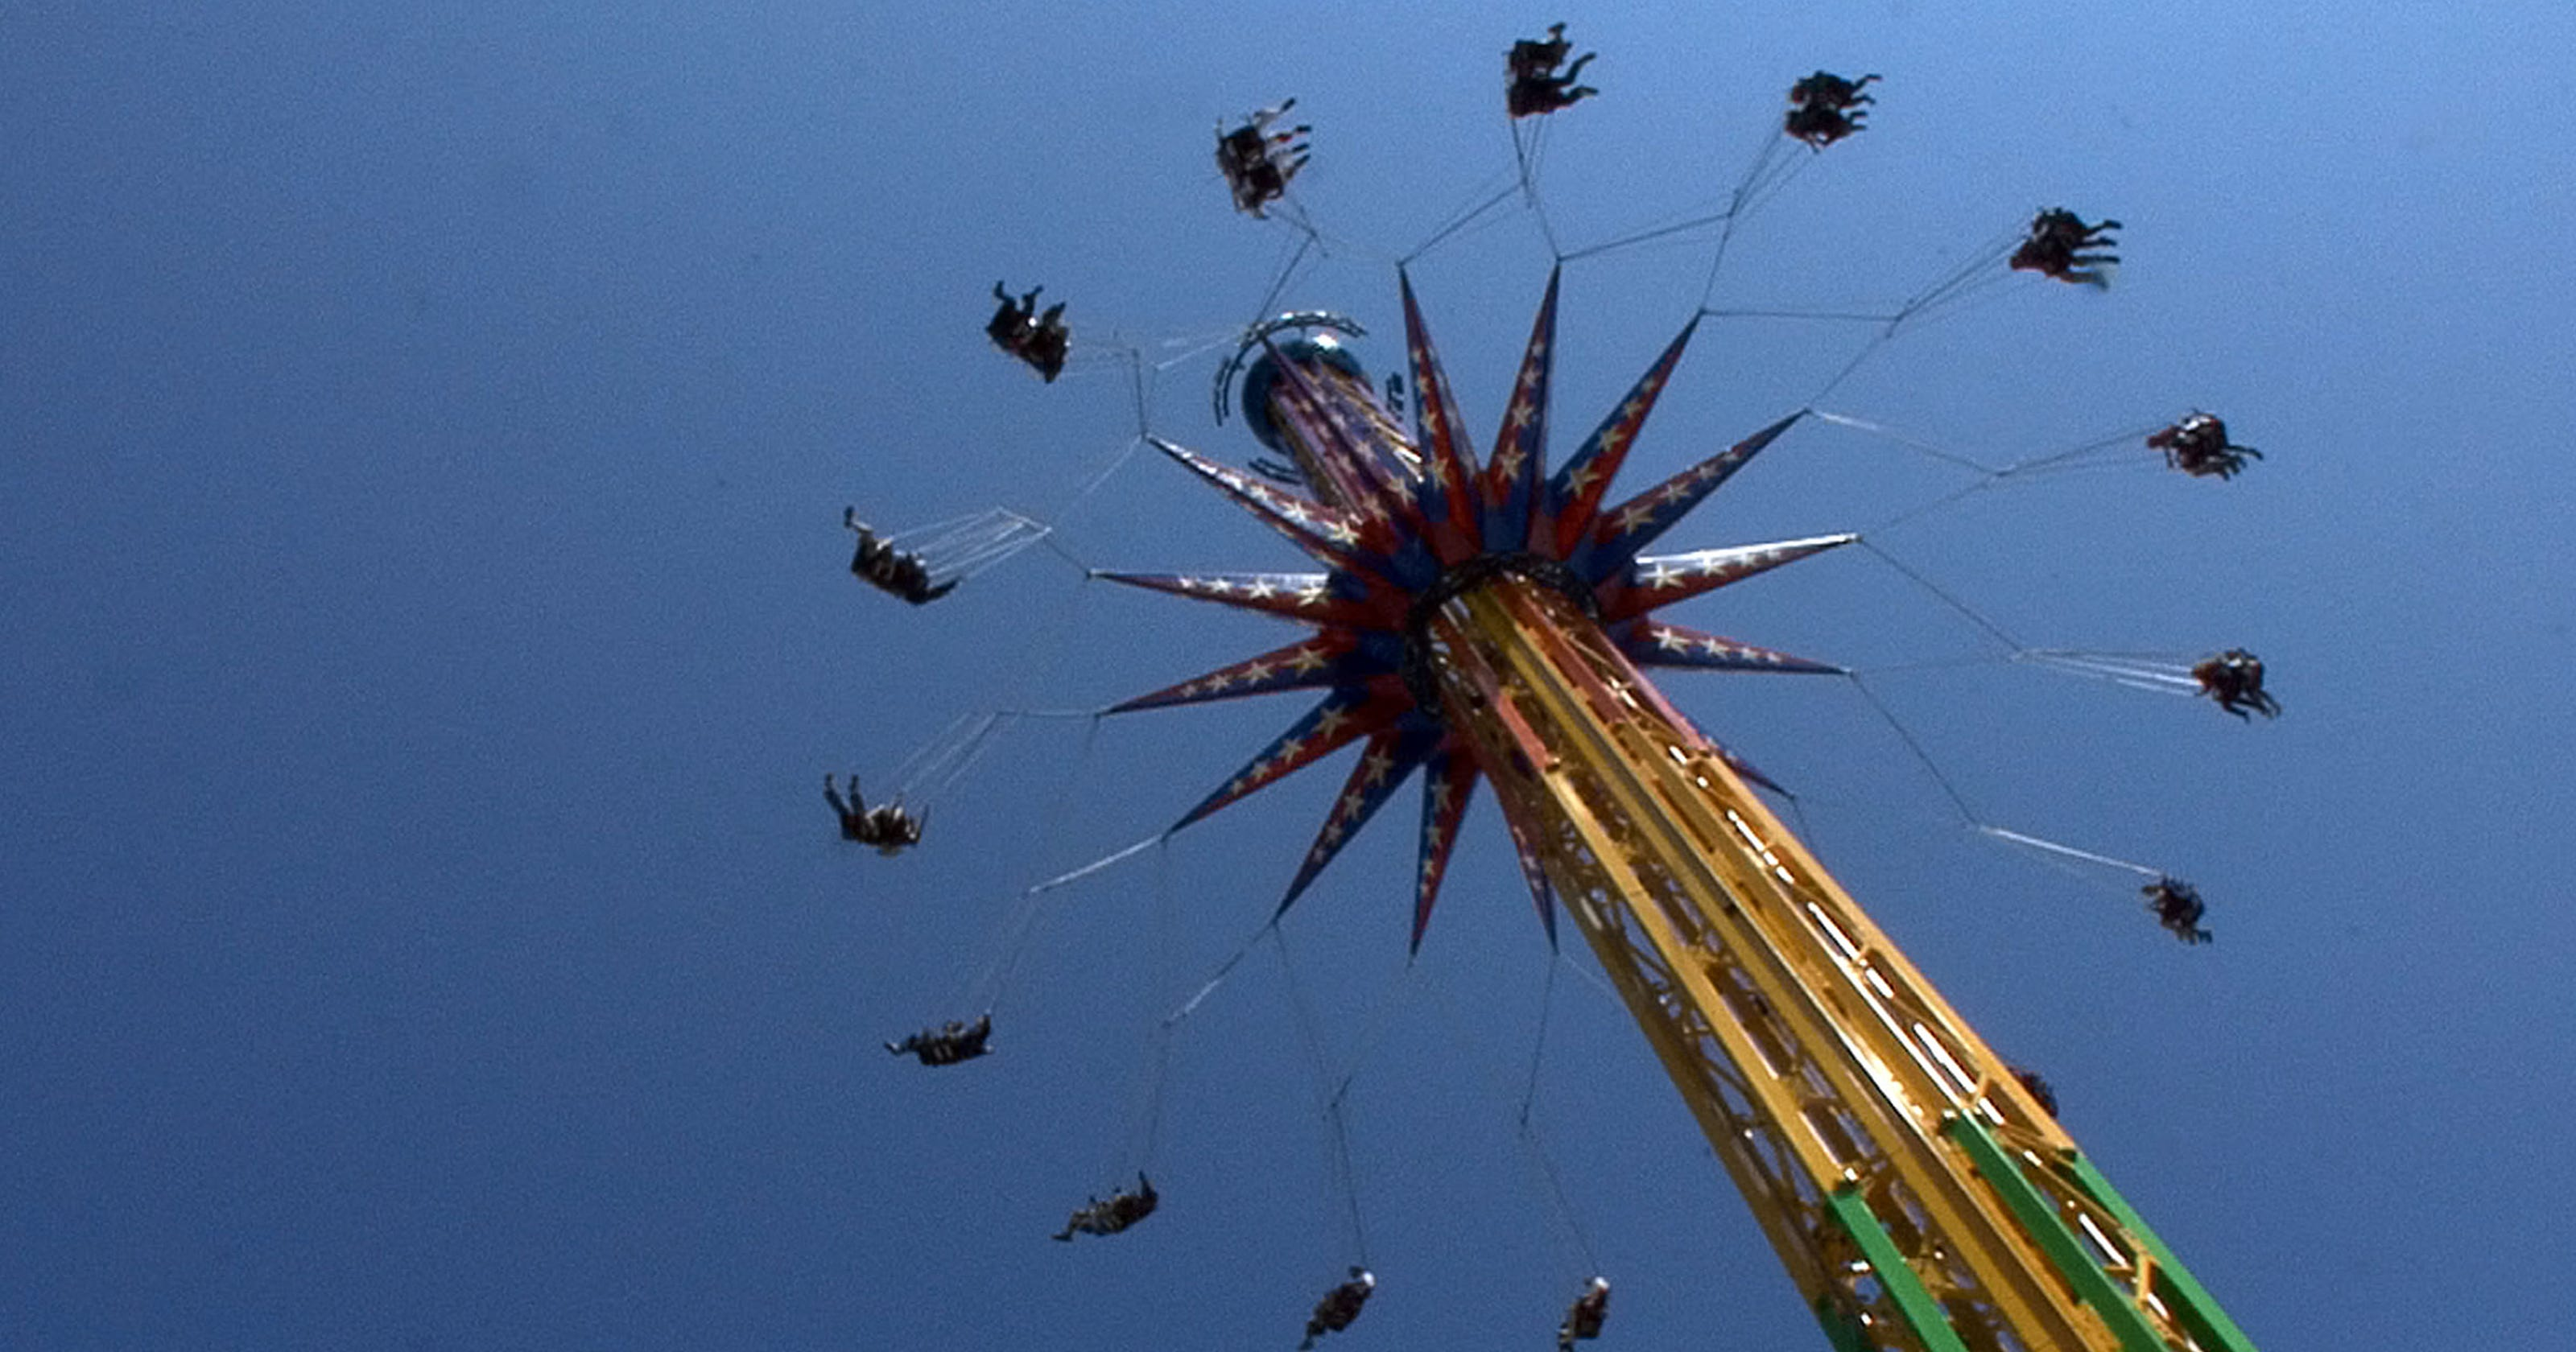 Six Flags Great Adventure ride SkyScreamer stuck after emergency stop